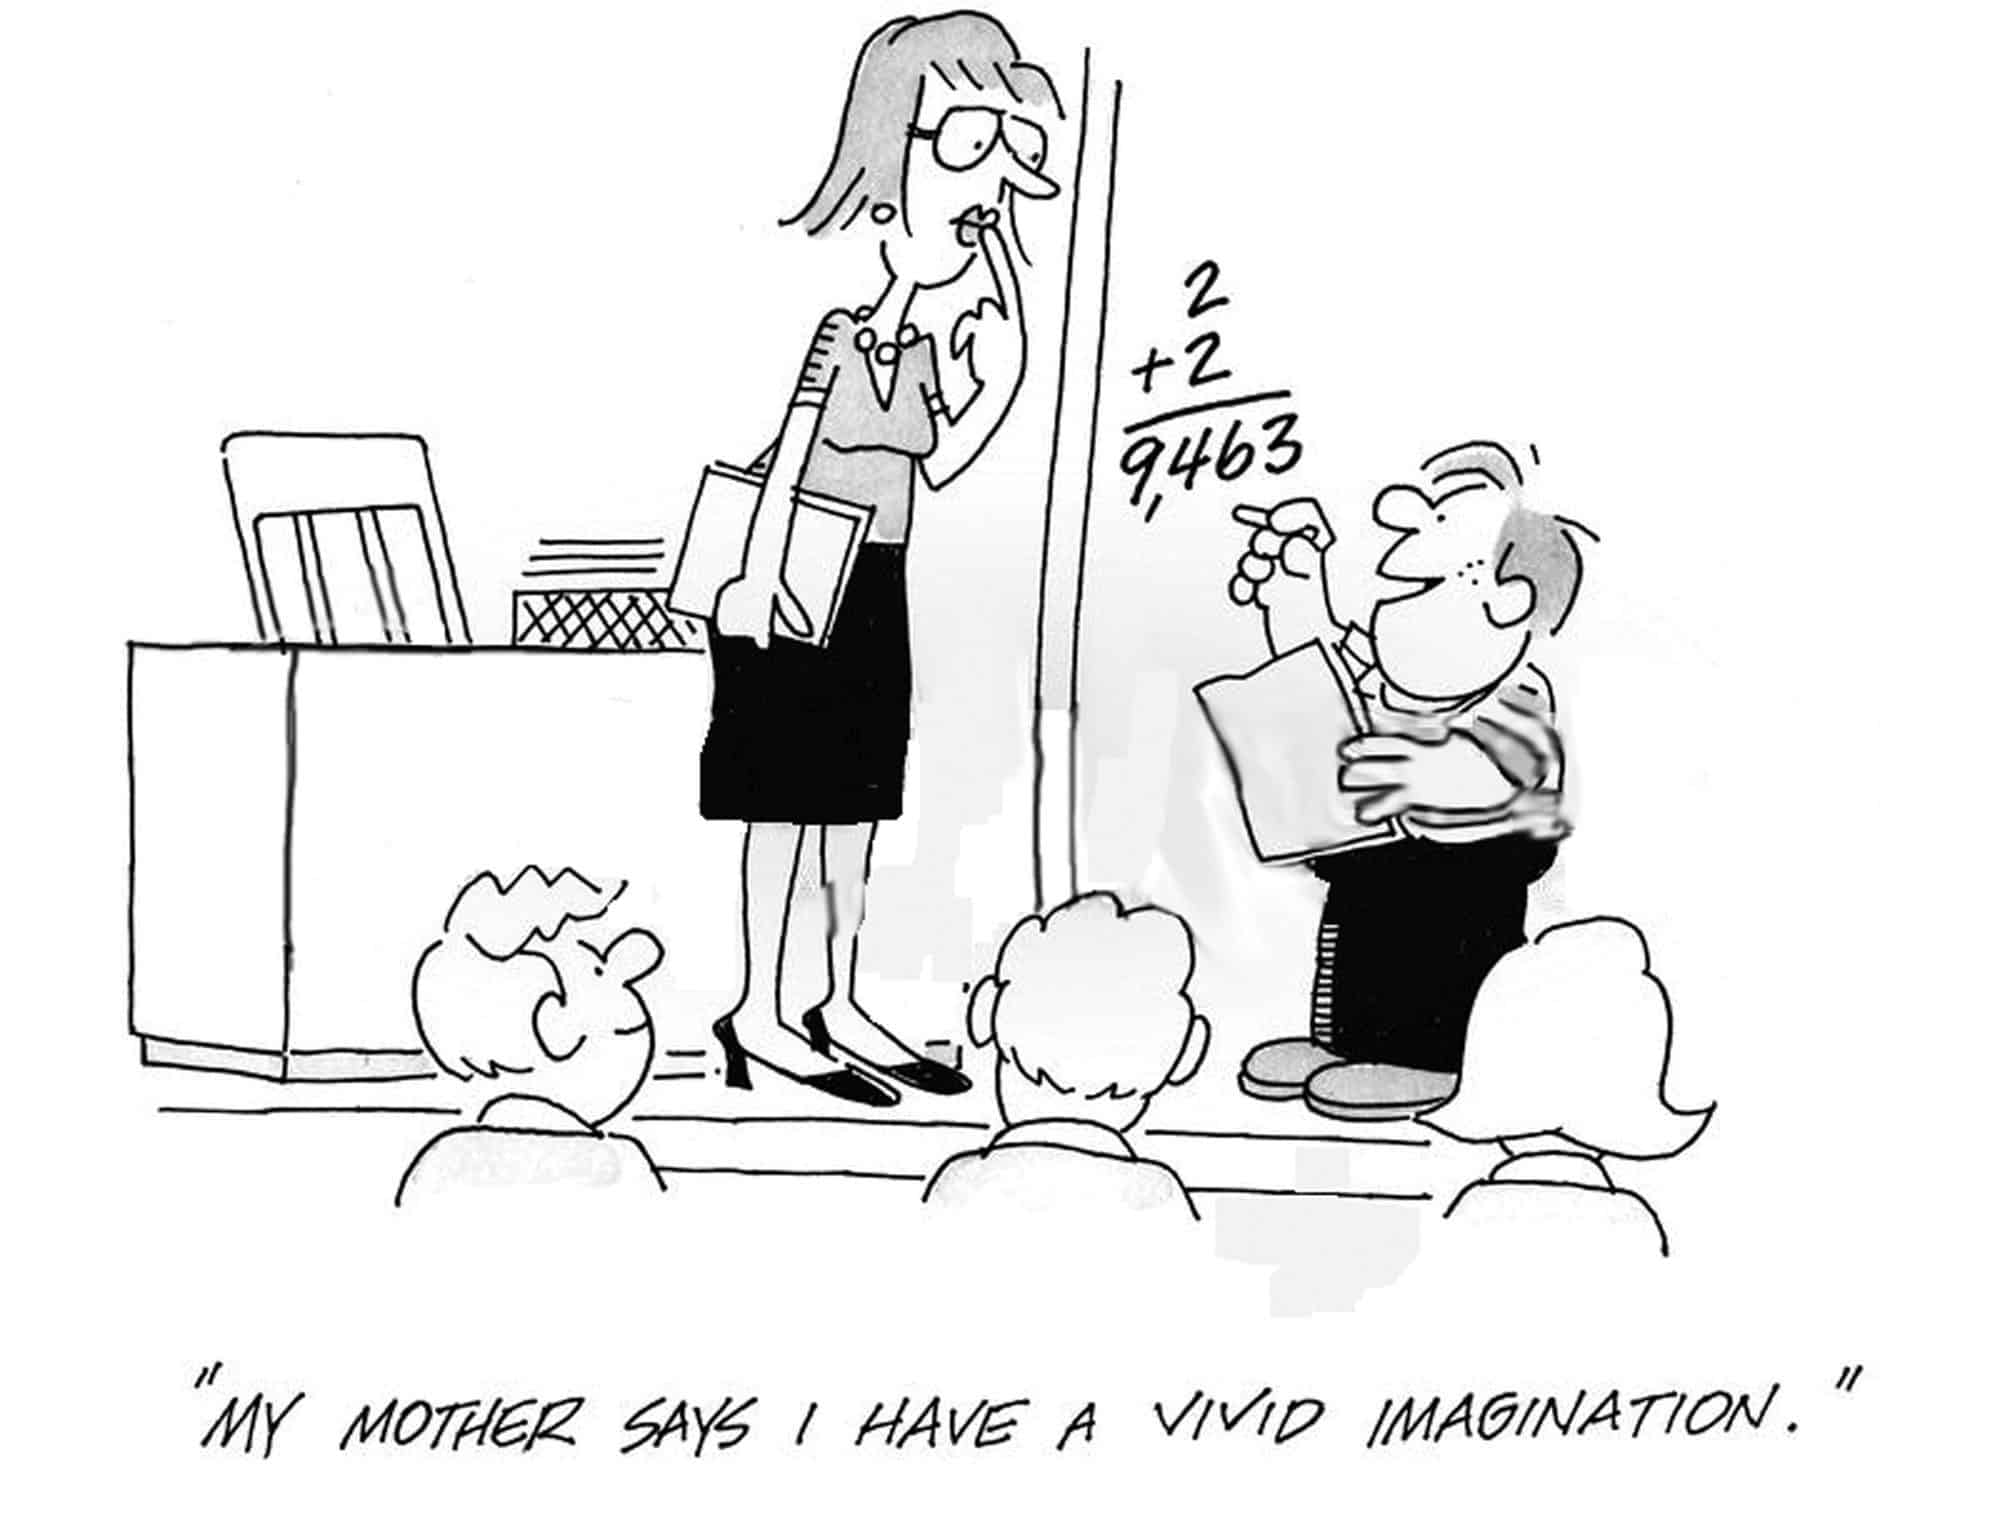 'My mother says I have a vivid imagination.'